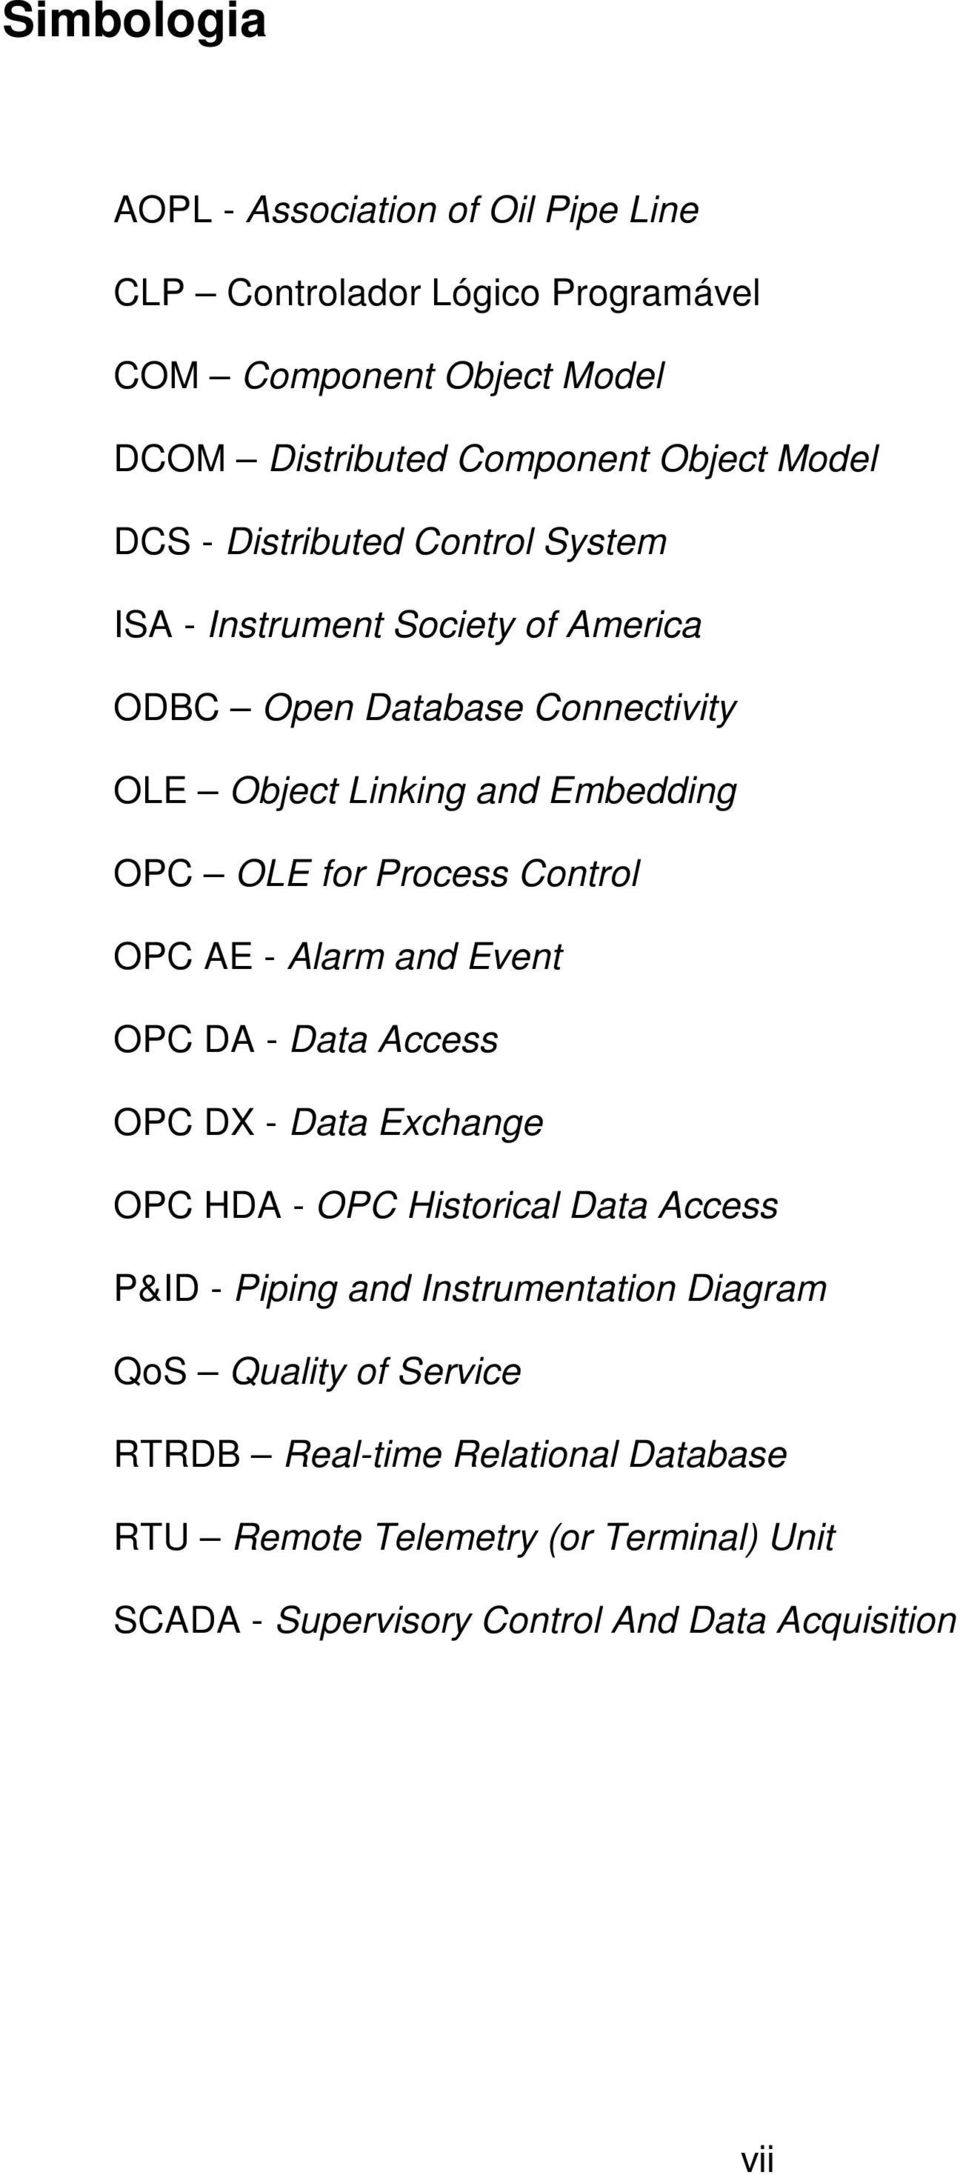 Control OPC AE - Alarm and Event OPC DA - Data Access OPC DX - Data Exchange OPC HDA - OPC Historical Data Access P&ID - Piping and Instrumentation